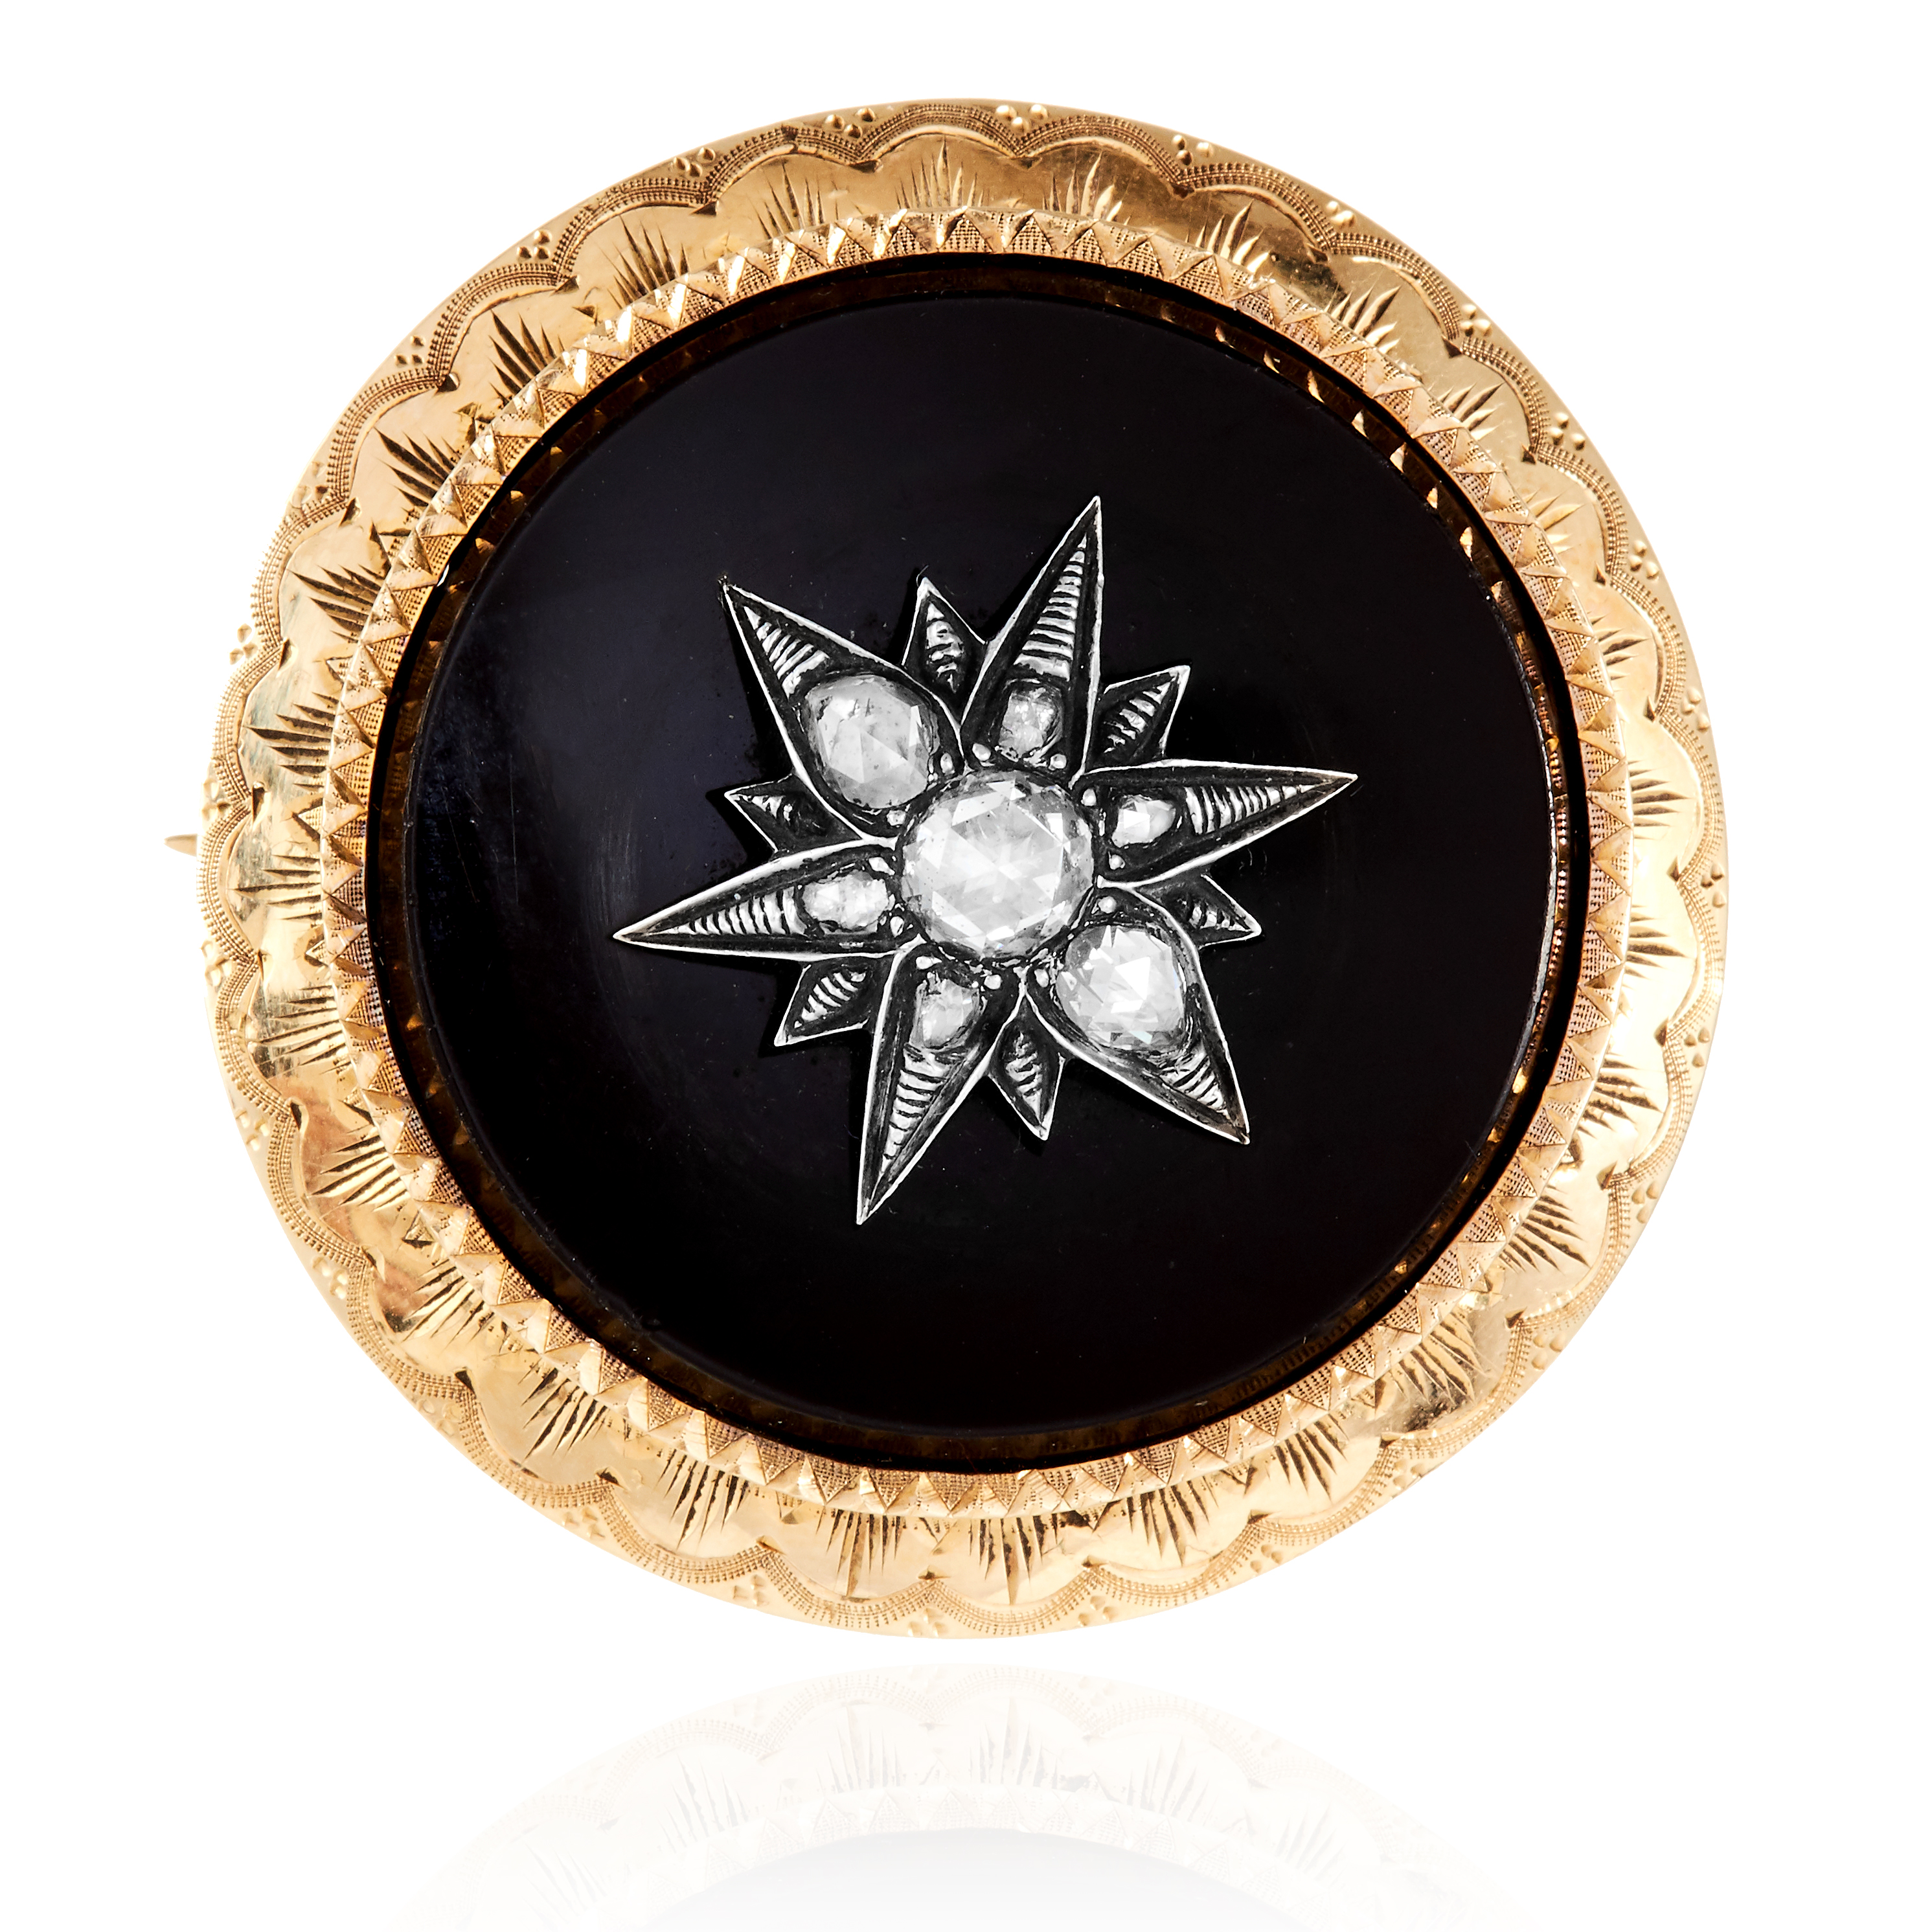 Los 17 - AN ANTIQUE DIAMOND AND ONYX BROOCH, 19TH CENTURY in high carat yellow gold, the circular polished